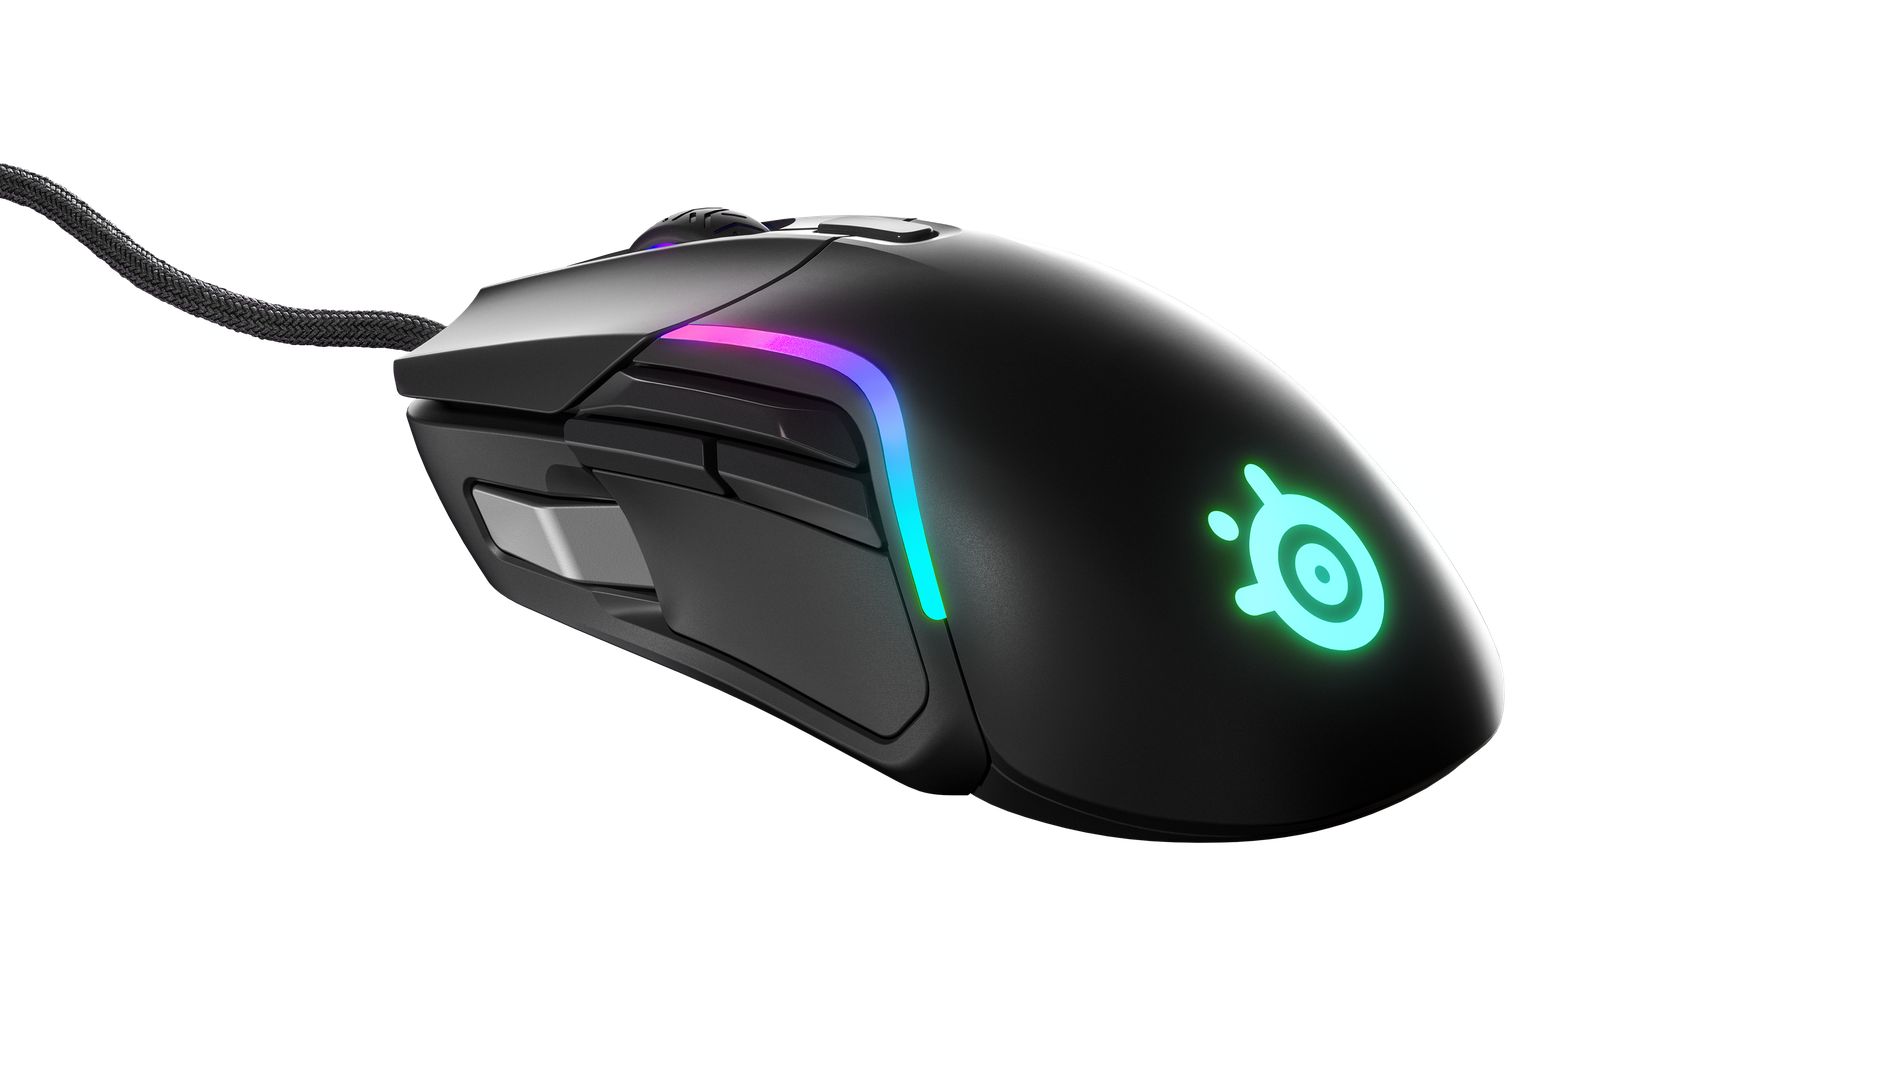 Steelseries - Rival 5 Gaming Mouse